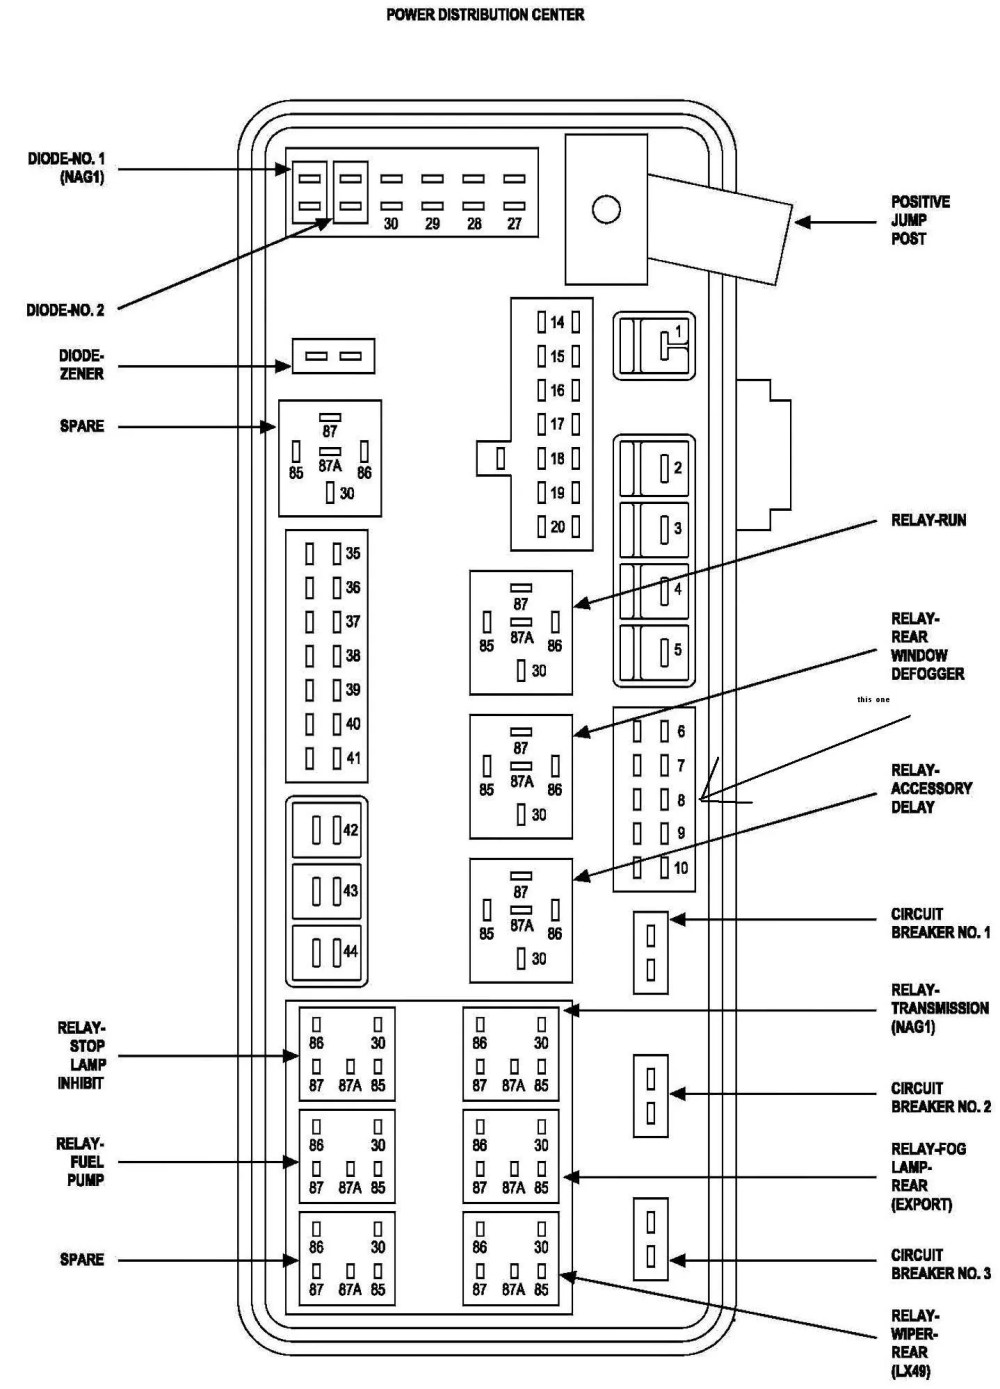 medium resolution of 02 durango fuse box wiring diagram 2003 dodge durango fuse box diagram wiring diagram database mix